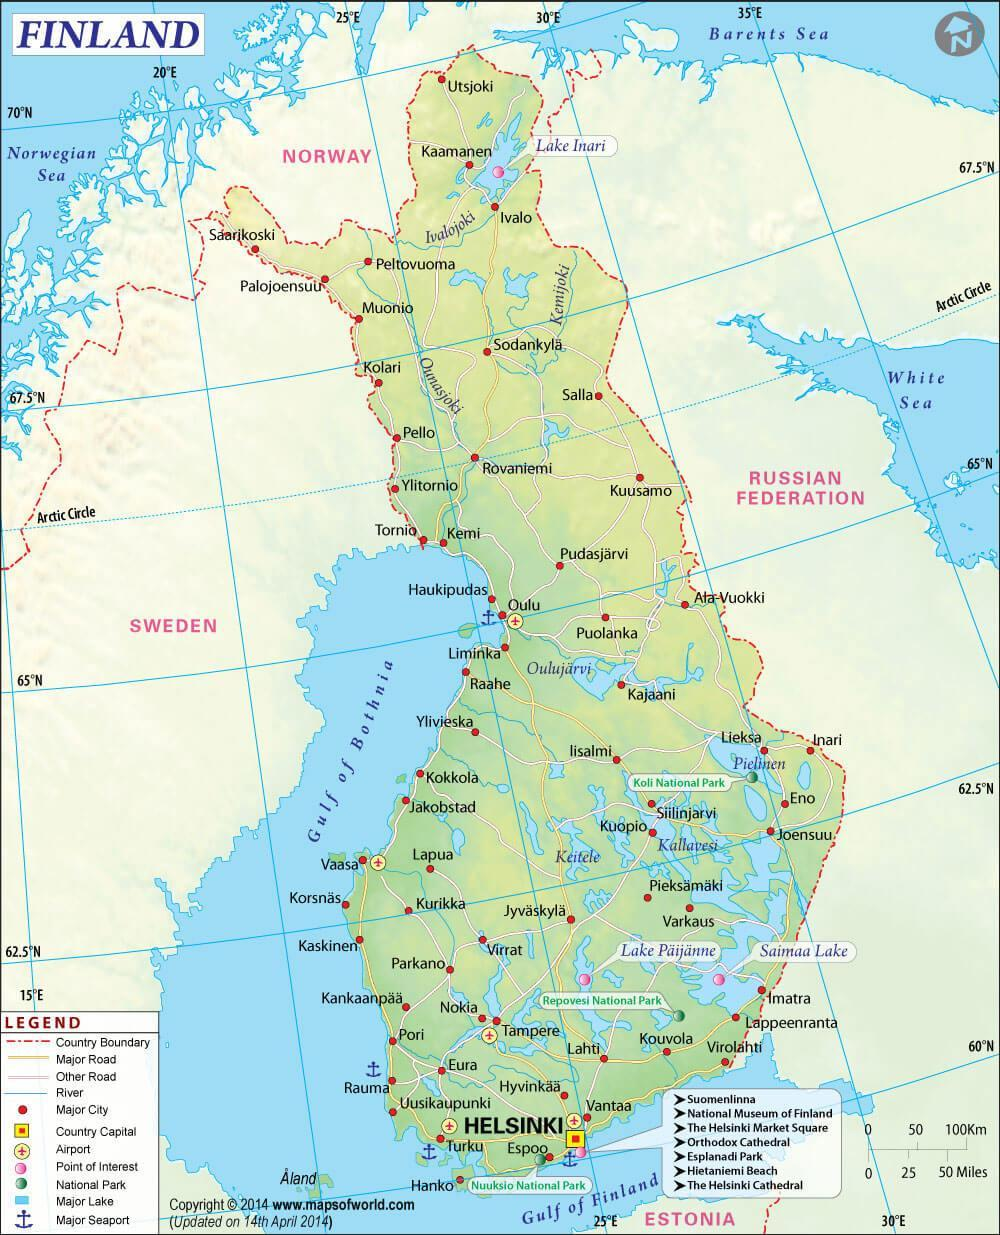 The map of Finland